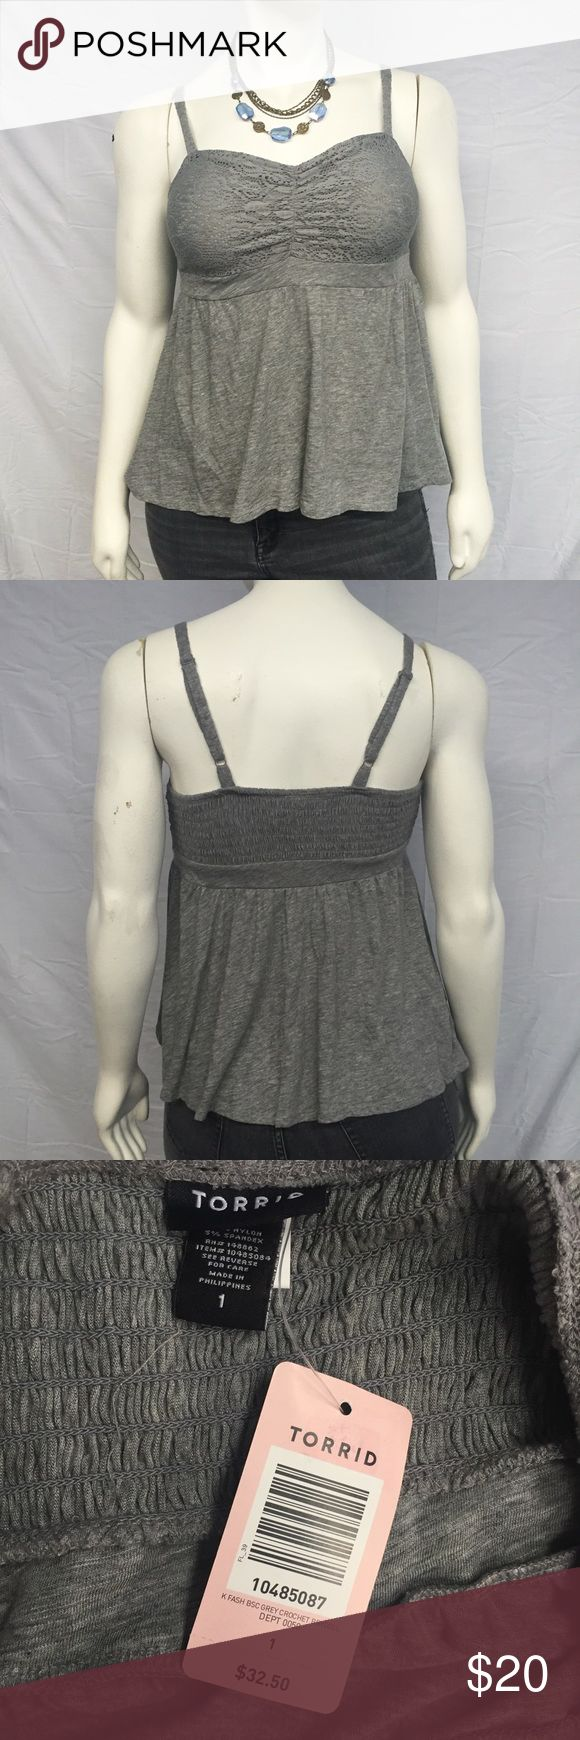 Torrid Heather Lace Tank Cute heather grey tank top from torrid! Fitted lace bodice. Smocked back. Adjustable straps. Empire waist. New with tags, never worn. Smoke and pet free home. torrid Tops Tank Tops